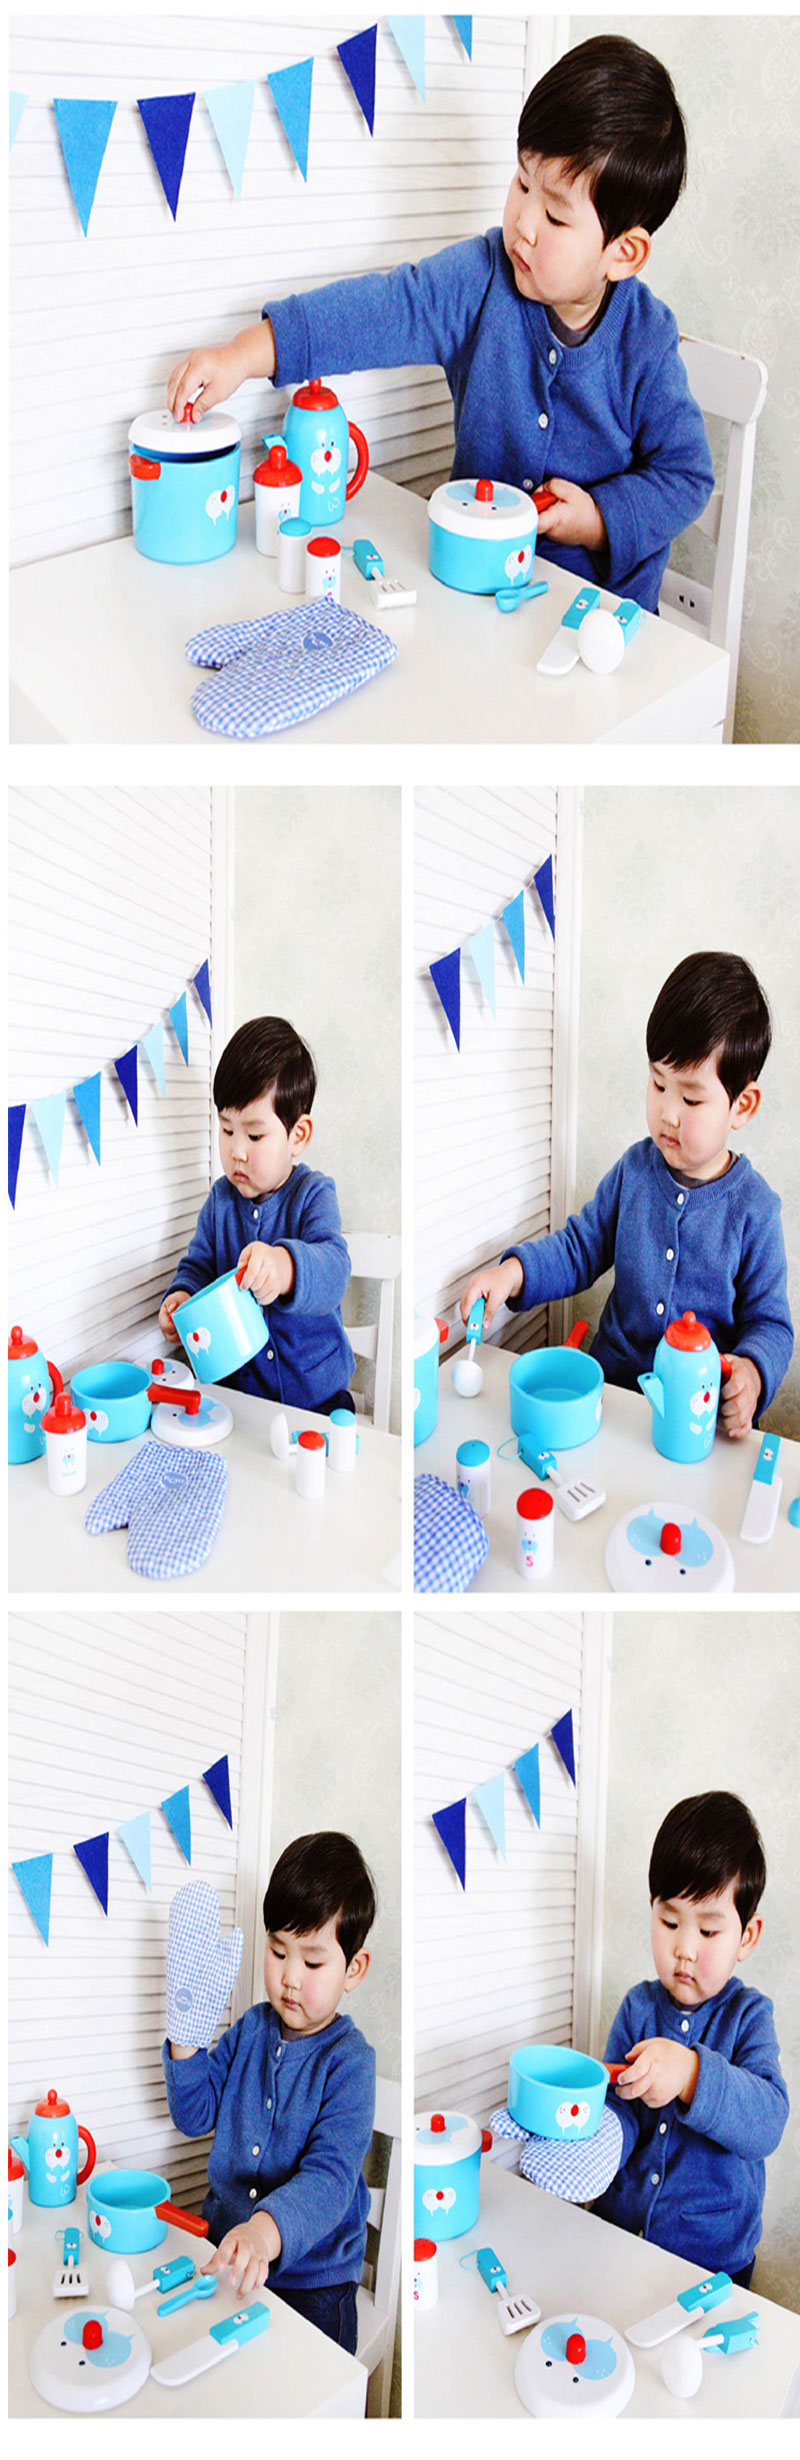 Elephant Seal Table Ware Club Toys Kitchen Play Wonder Kitchen Play ...